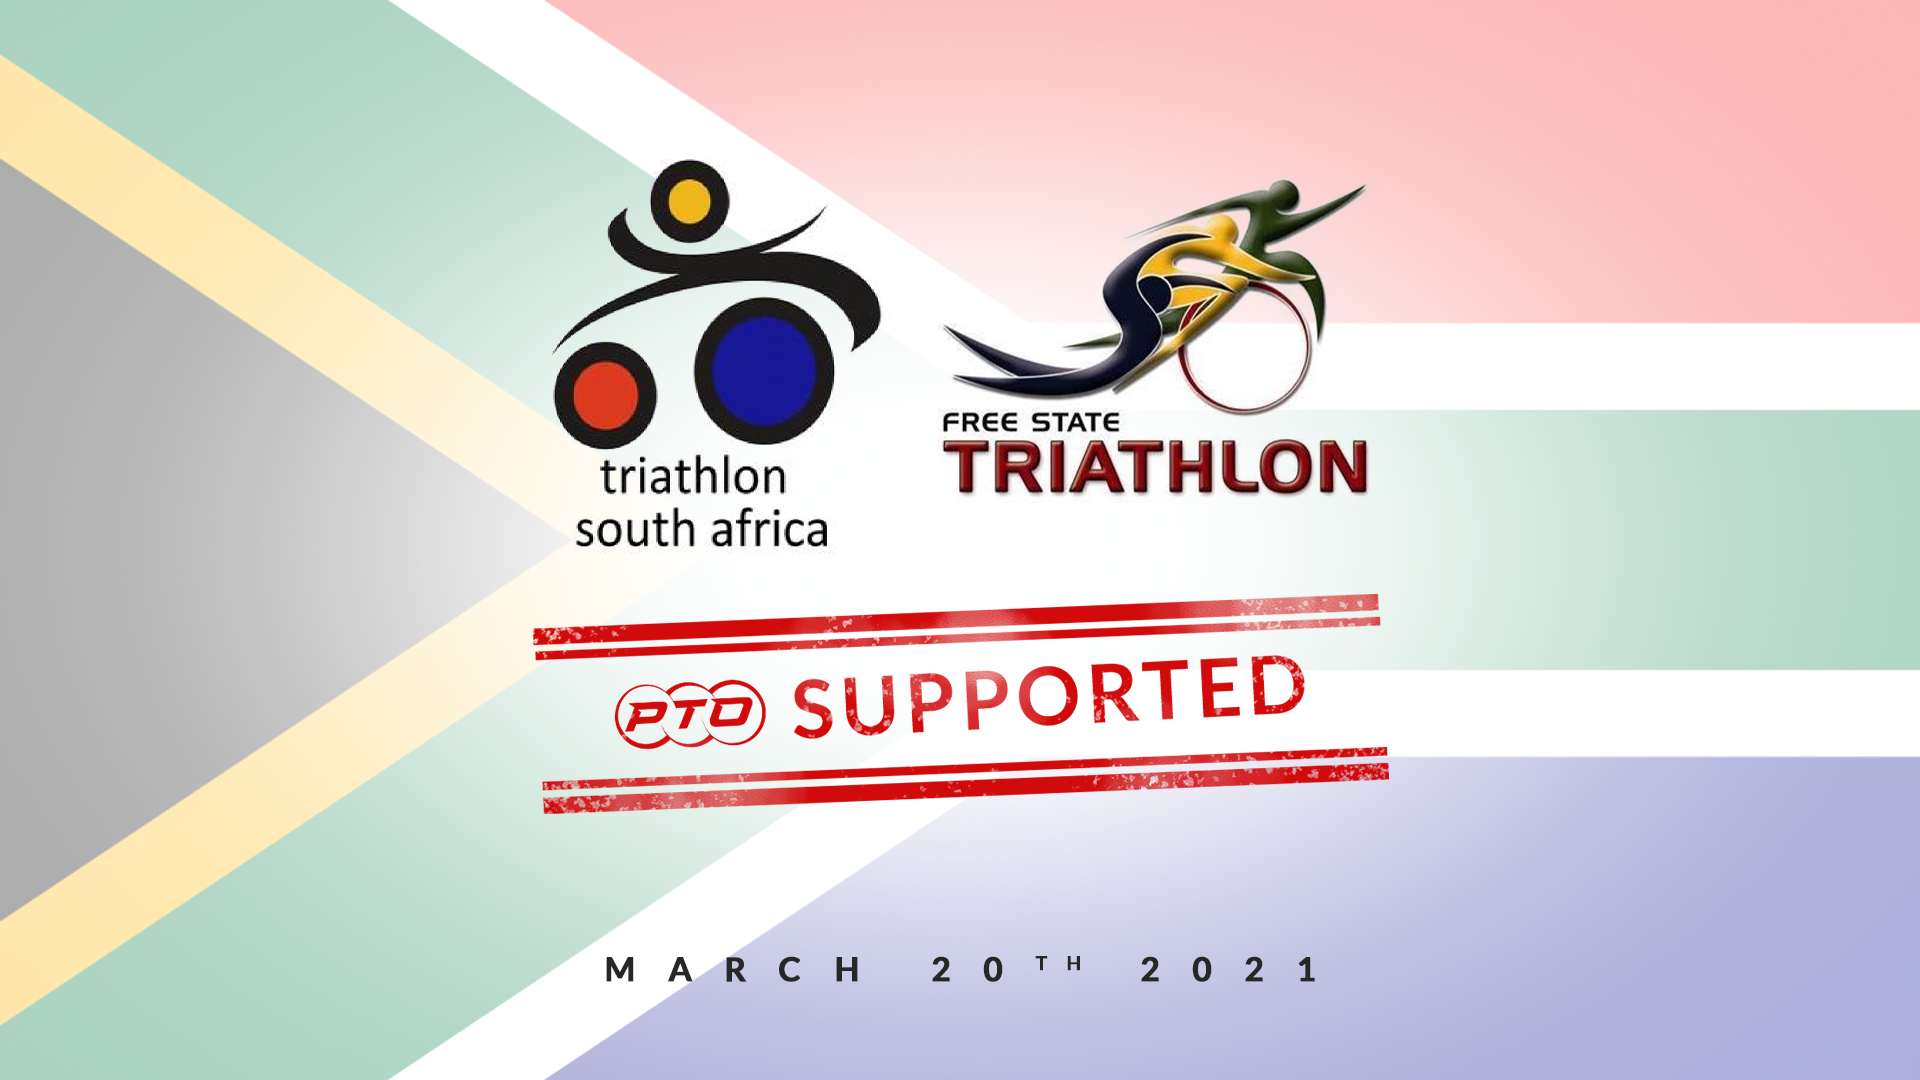 PROFESSIONAL TRIATHLETES ORGANISATION PARTNERS WITH TRIATHLON SOUTH AFRICA TO SUPPORT THE SOUTH AFRICA NATIONAL TRIATHLON CHAMPIONSHIPS